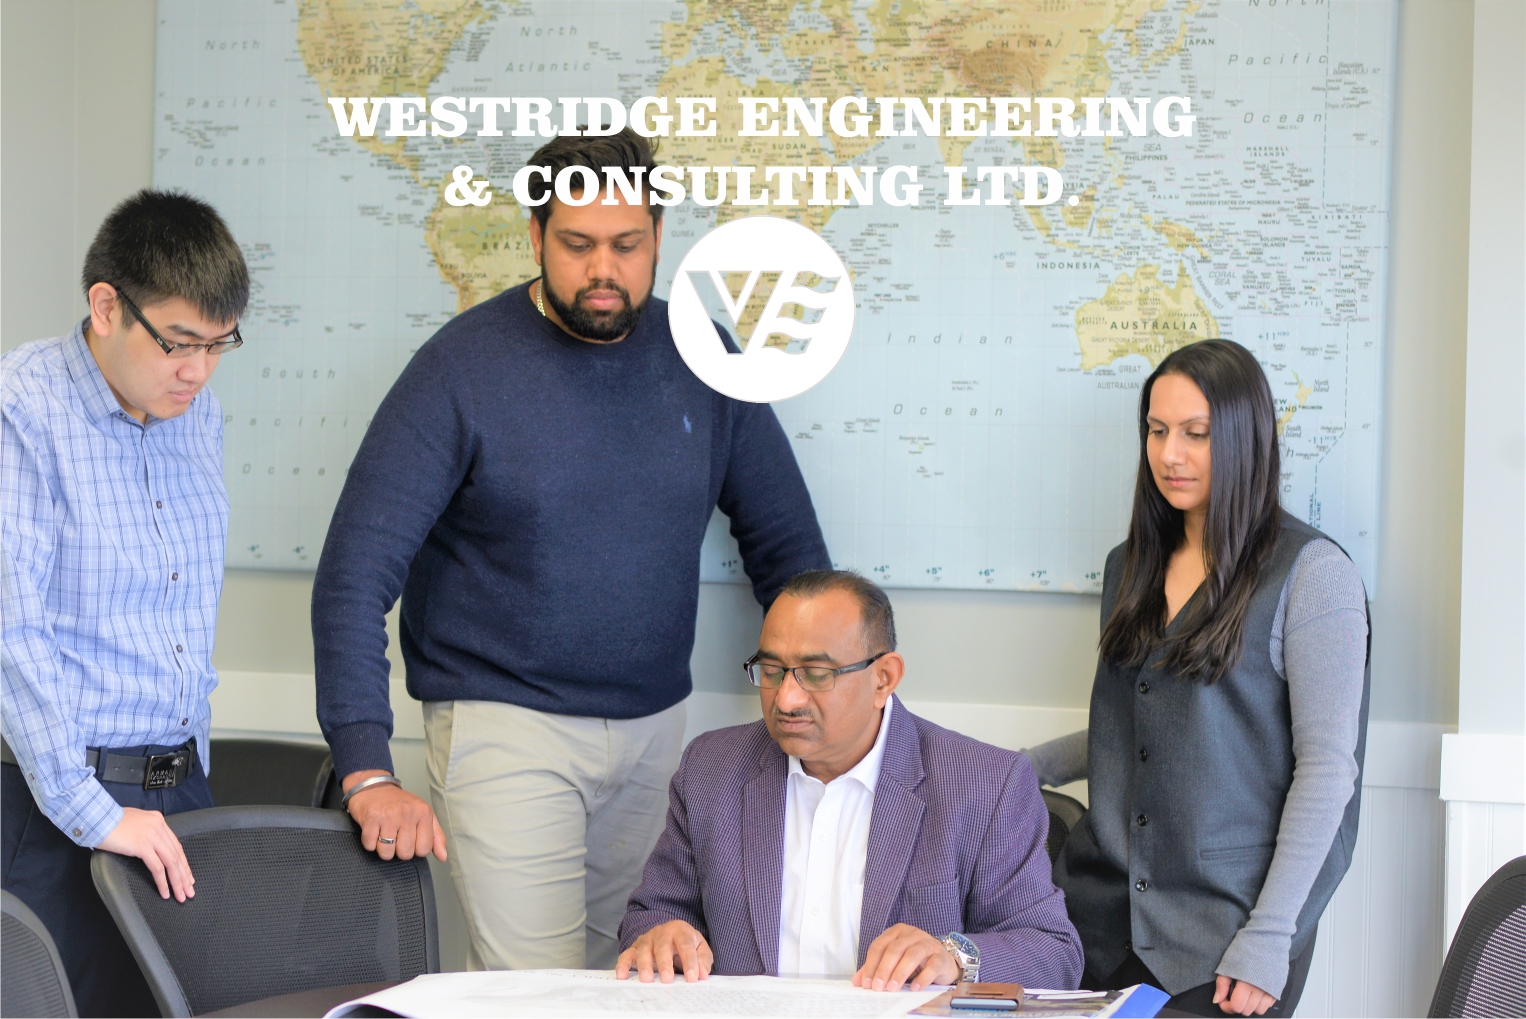 WESTRIDGE ENGINEERING & CONSULTING LTD.